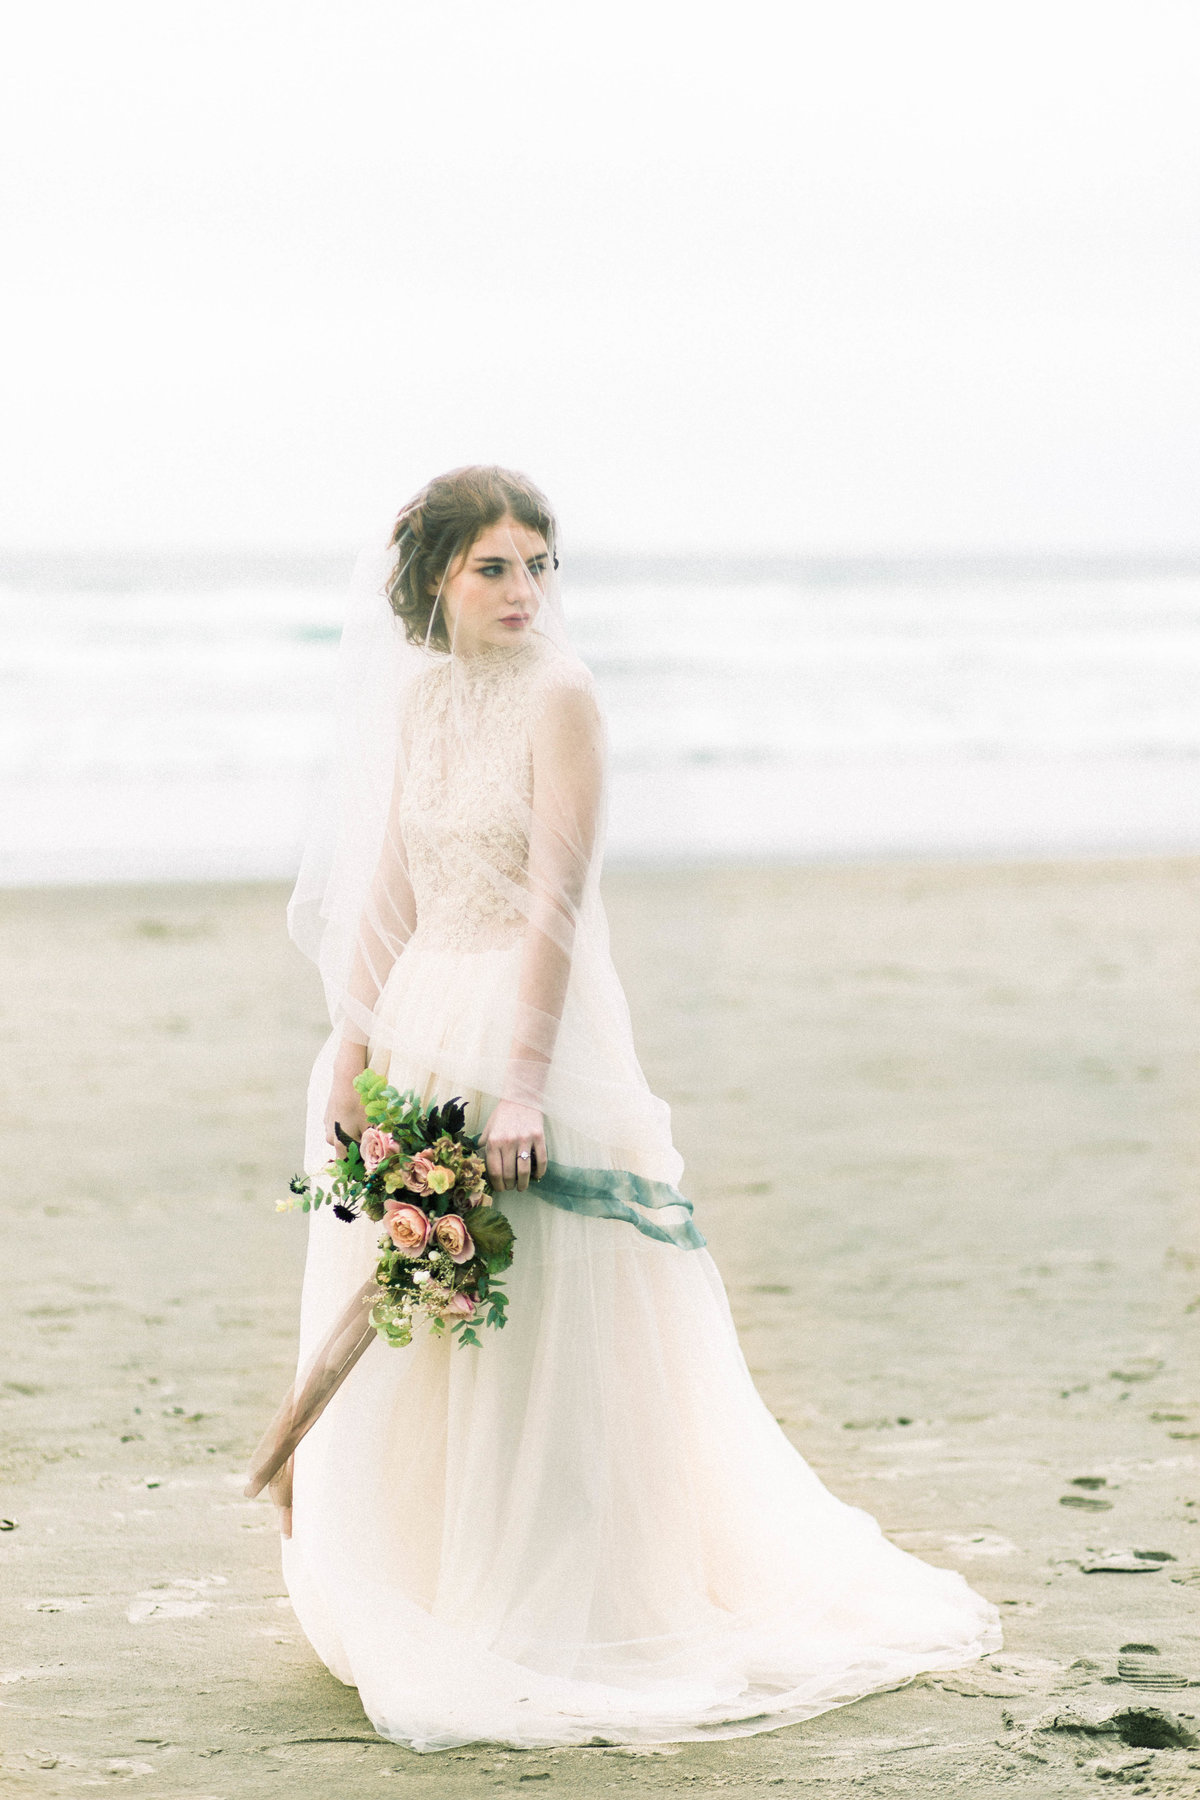 Cannon-Beach-Bridal-Editorial-Georgia-Ruth-Photography-2